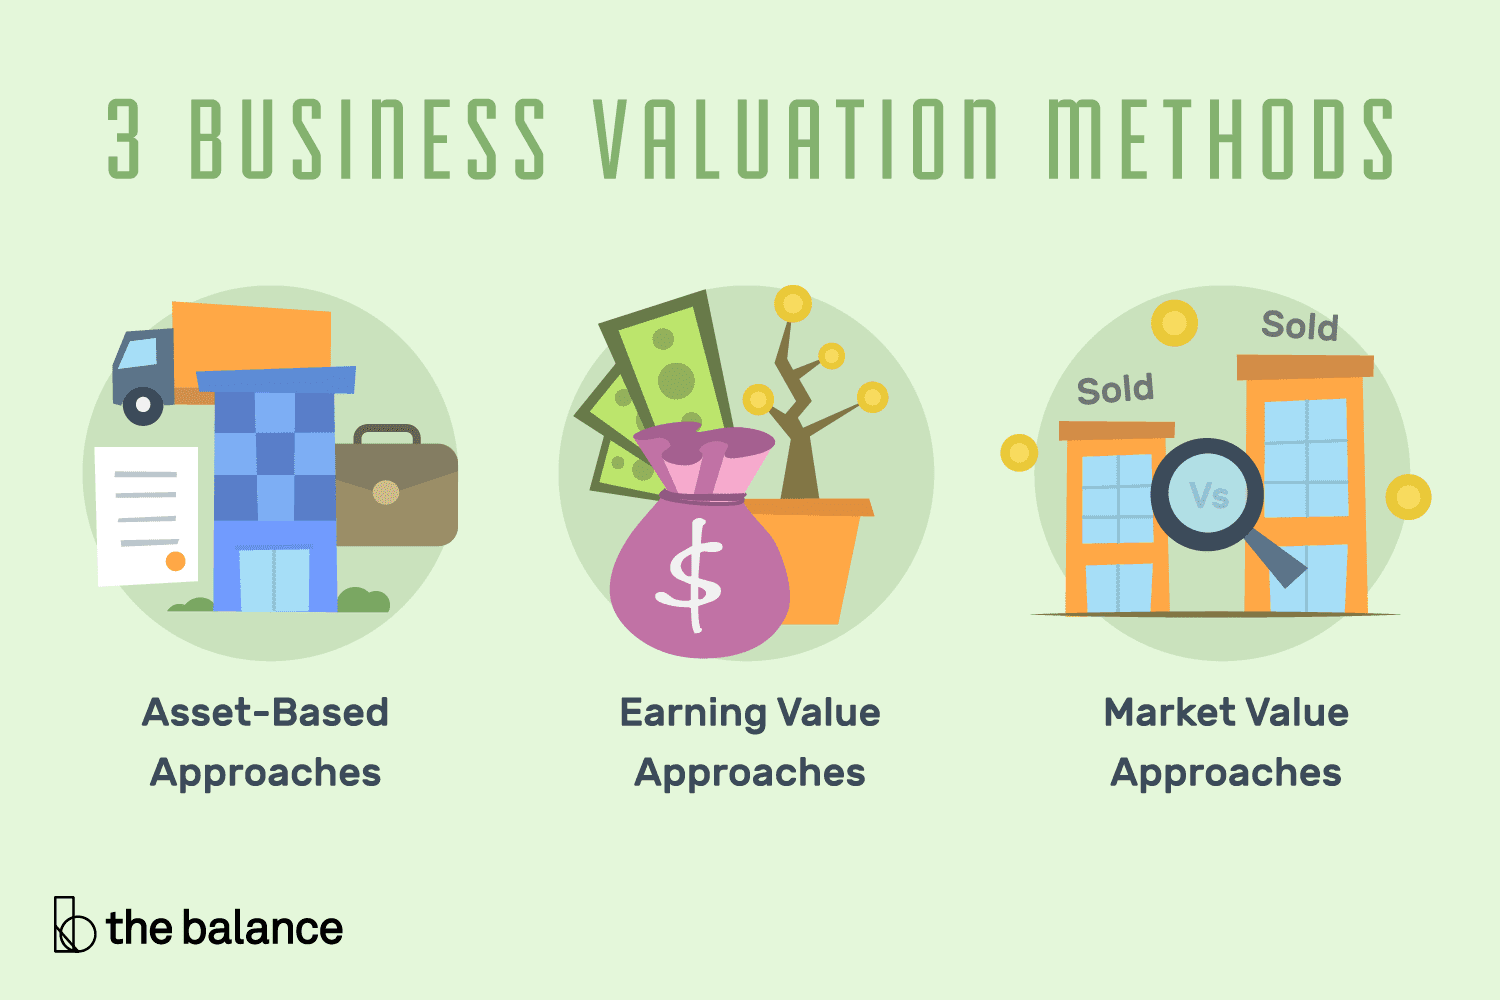 Three Business Valuation Methods